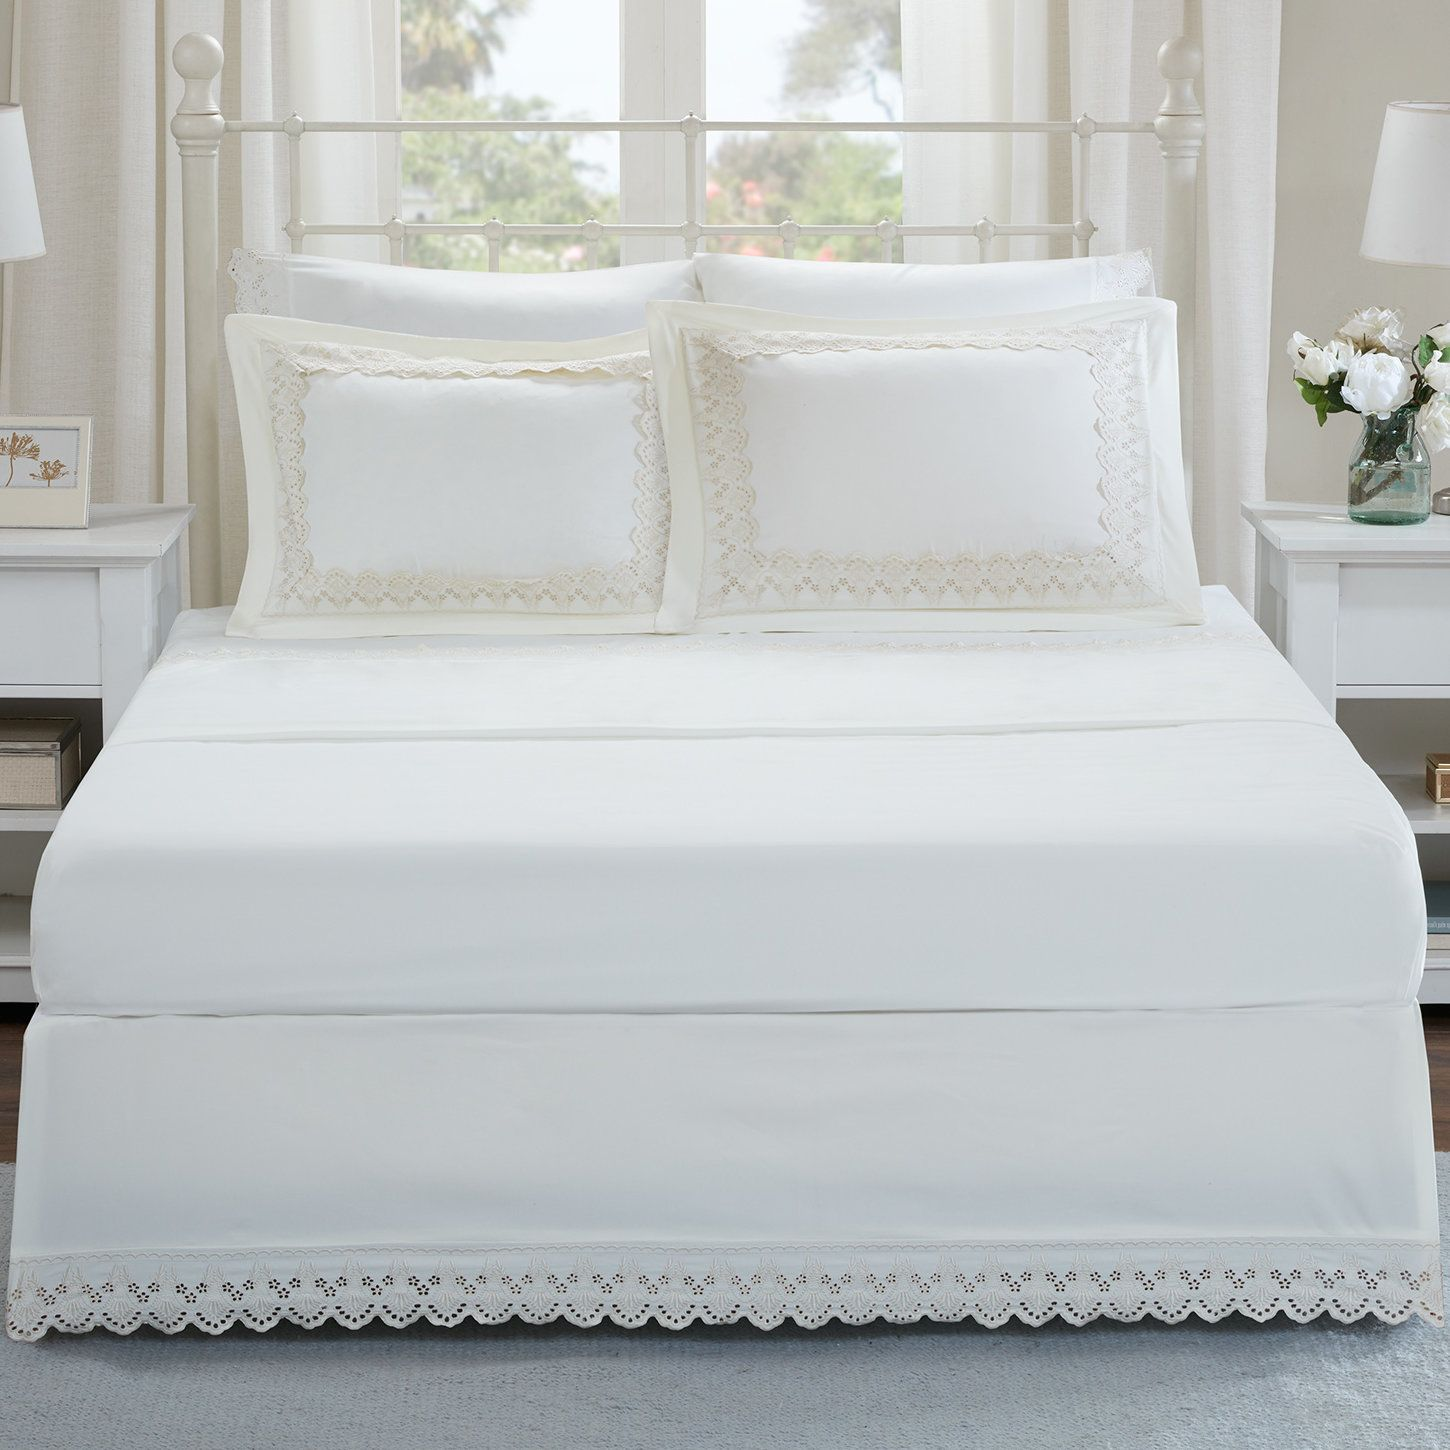 jorie floral eyelet embroidered shams and bed skirt set products